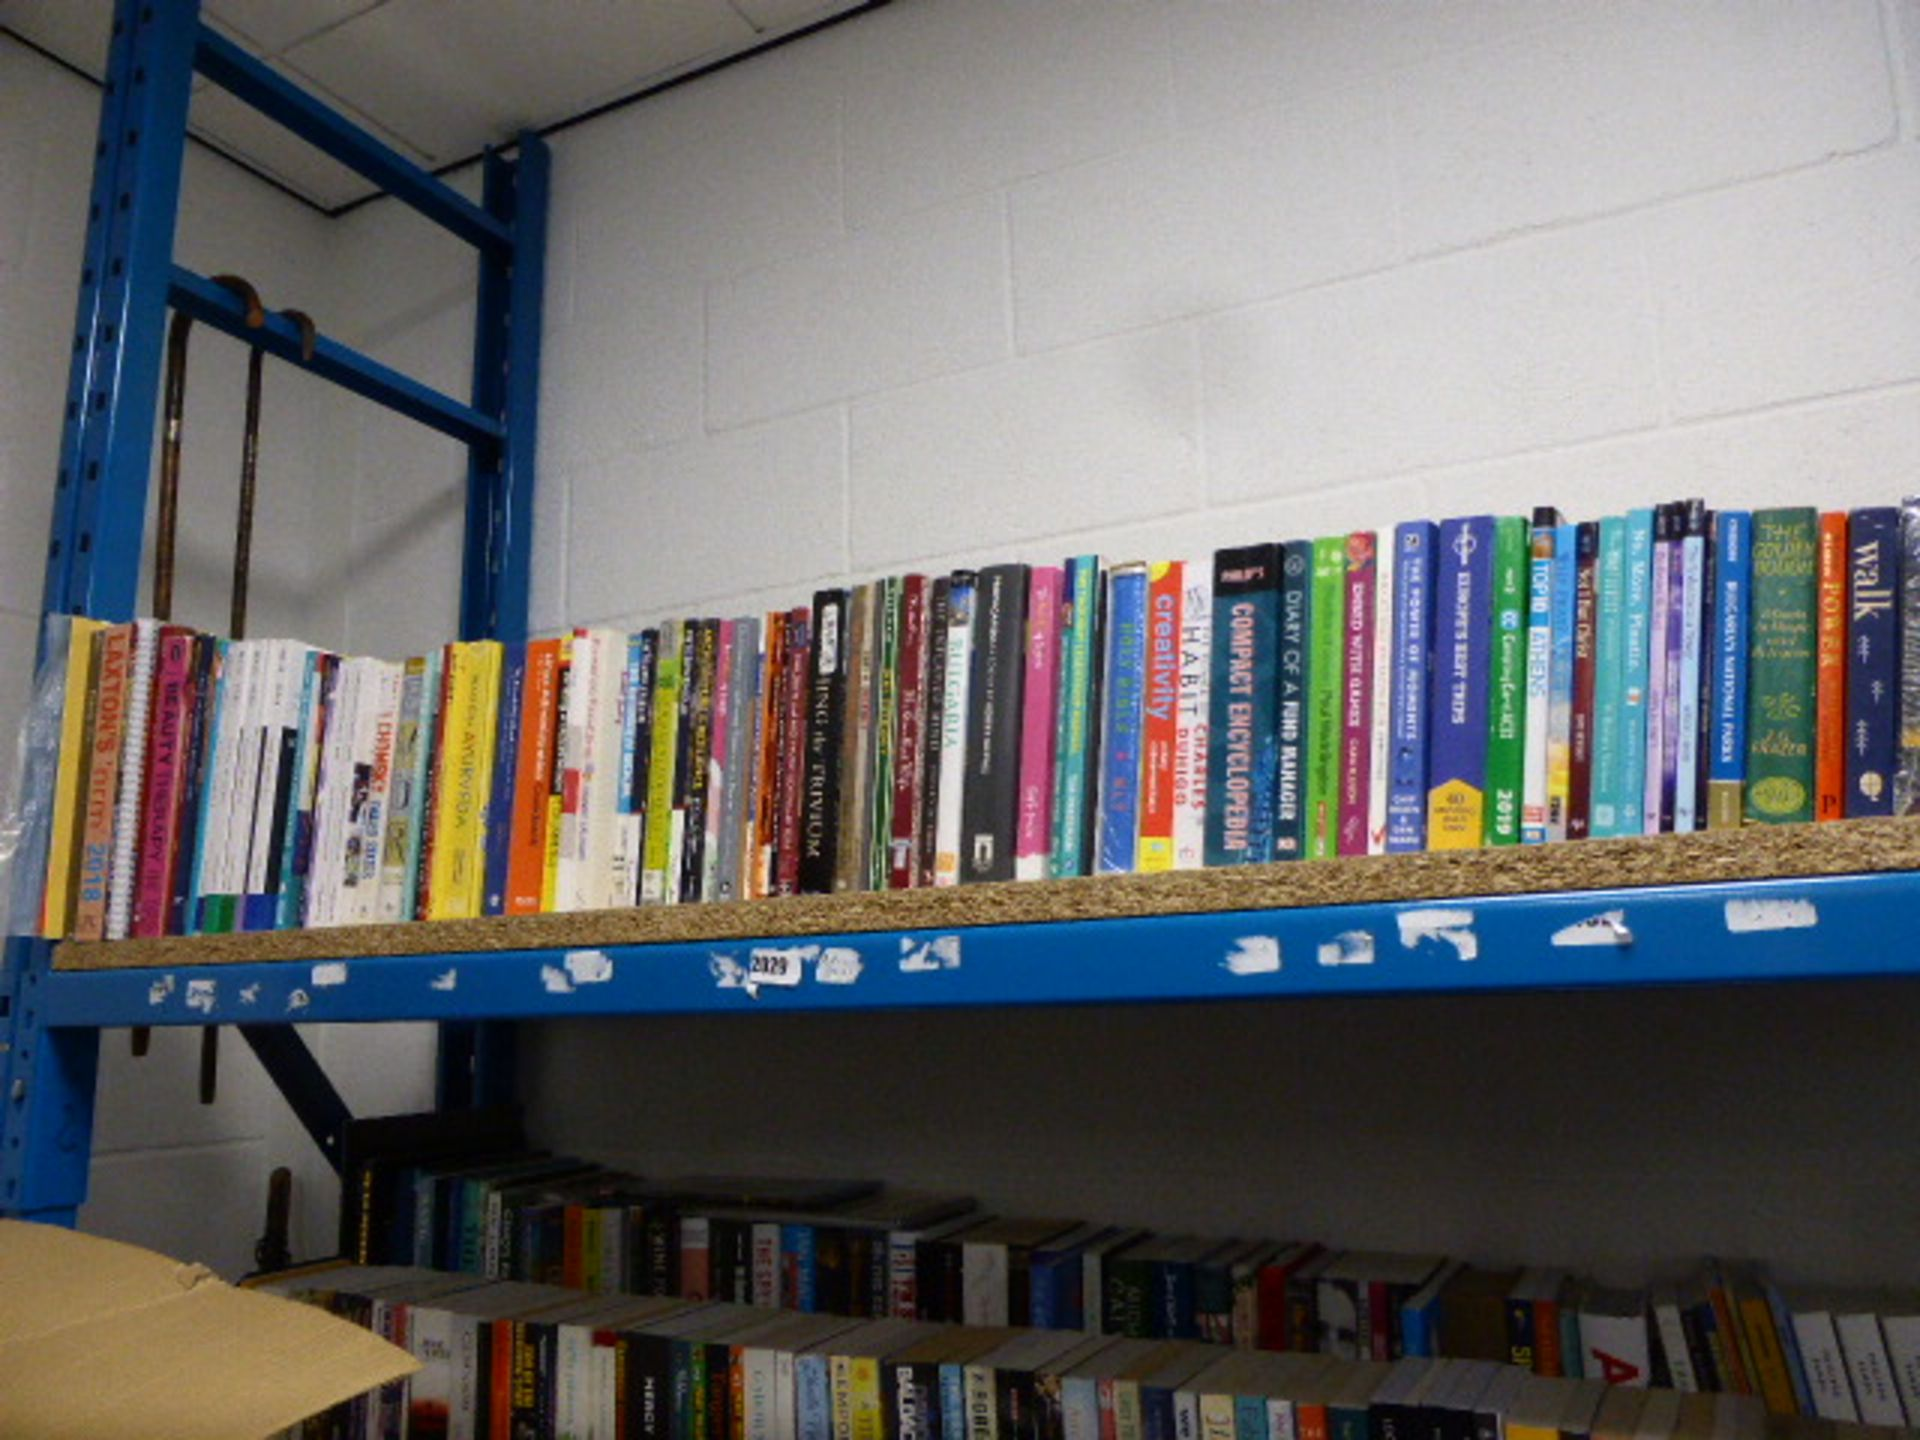 Lot 2029 - Shelf of various reference and study material books